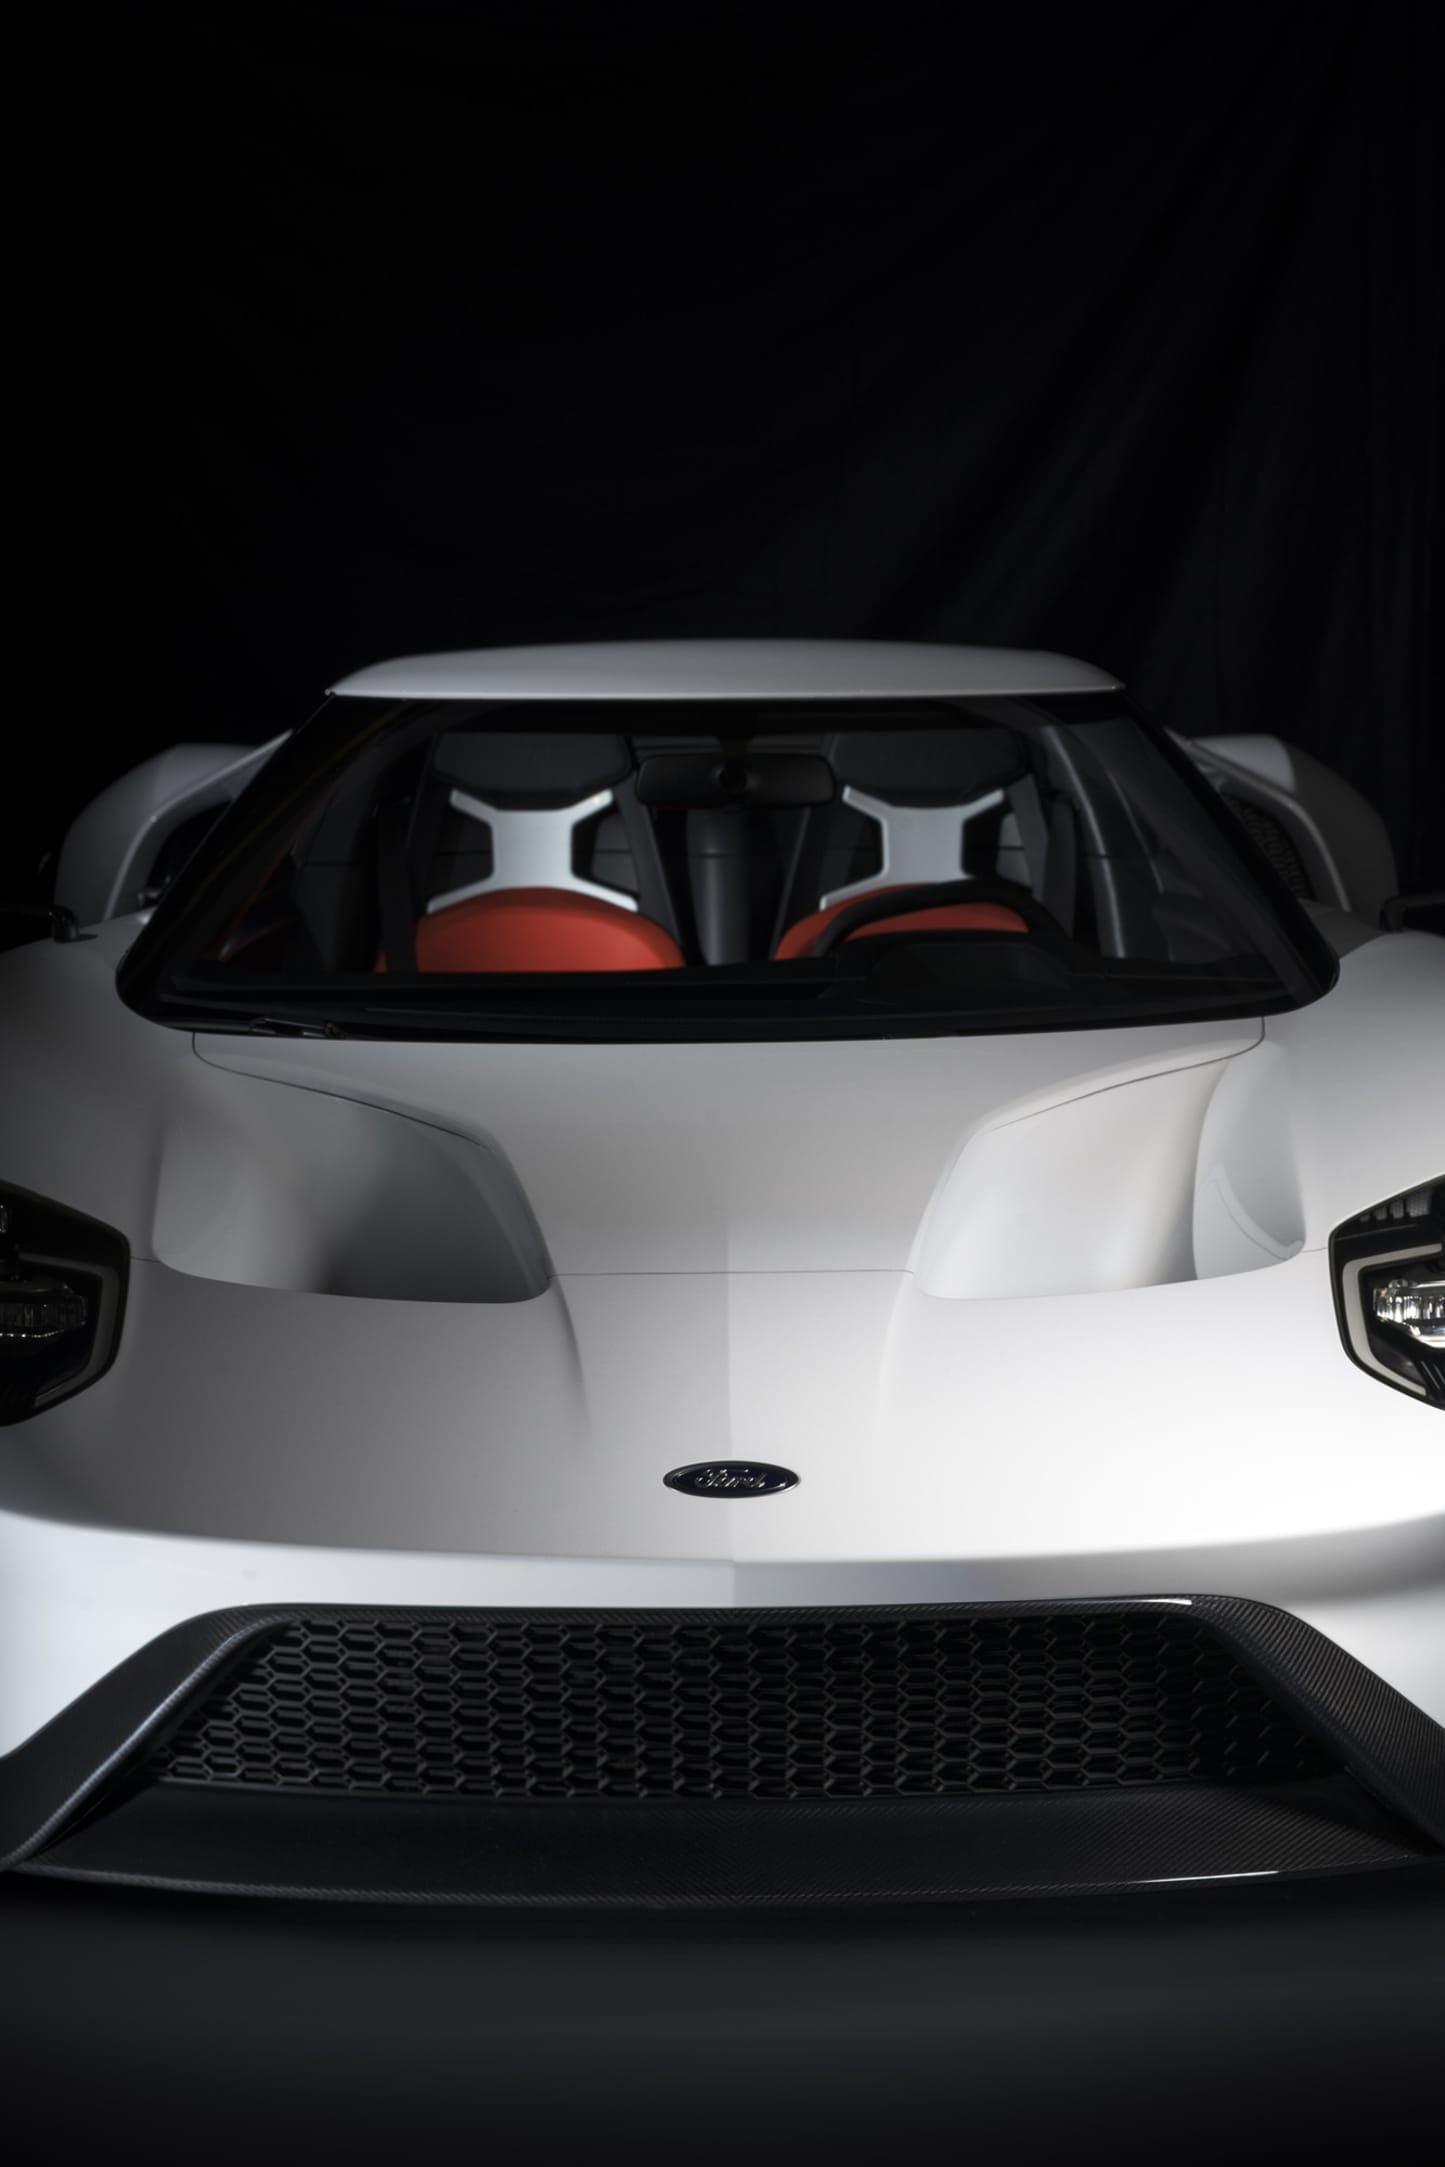 Ford GT is one of the most mythical models the brand ever produced. Just to be allowed to buy the new GT means a number of parameters for approval and placing an order.